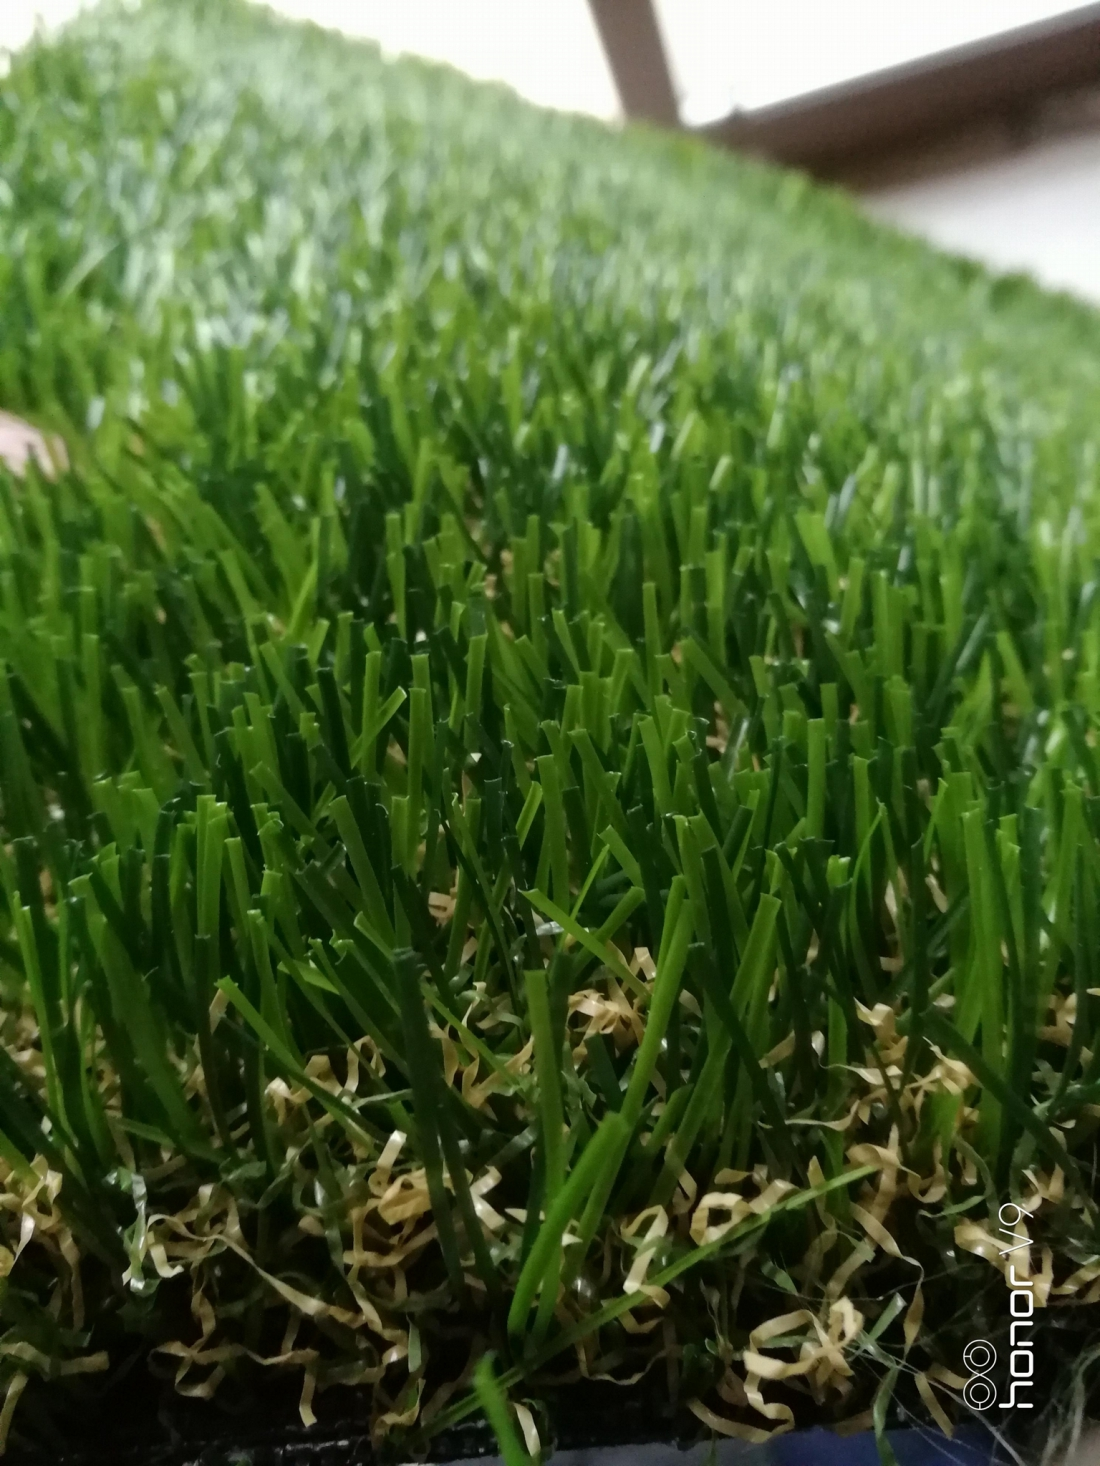 35mm natural looking and soft touching artifical grass for kids and pets